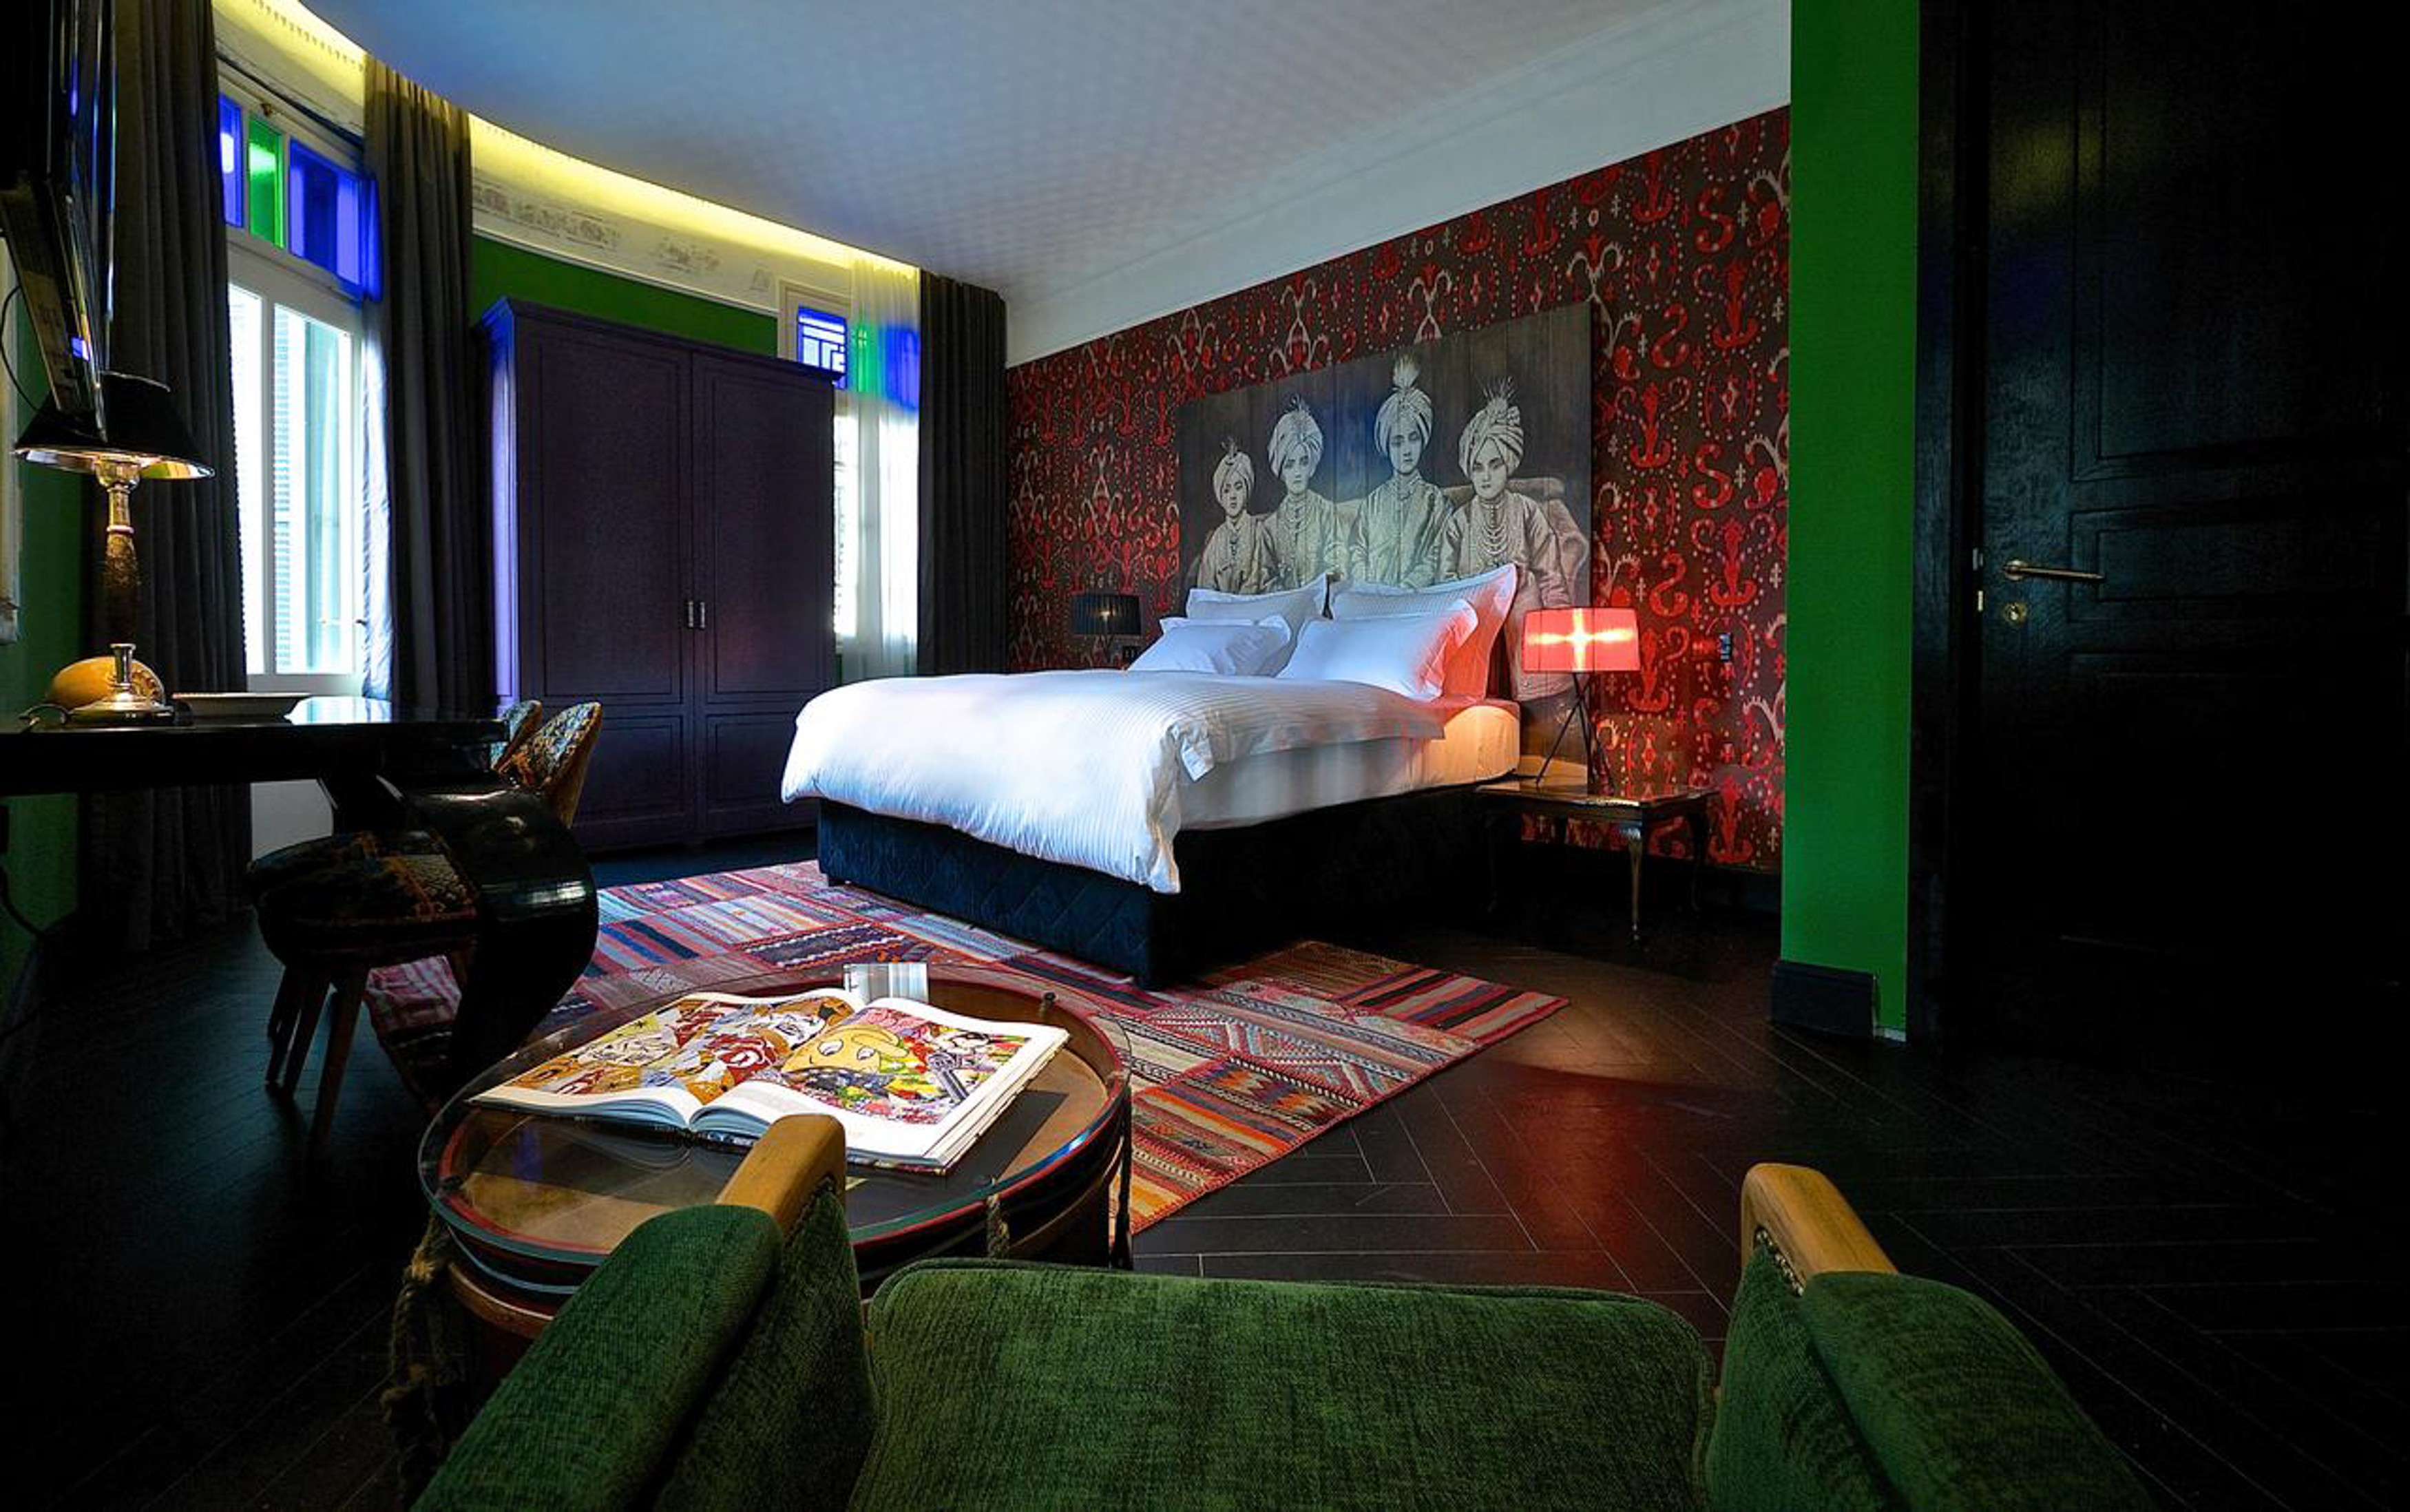 The Alma Hotel and Lounge lies inside a beautifully renovated 1925 townhouse